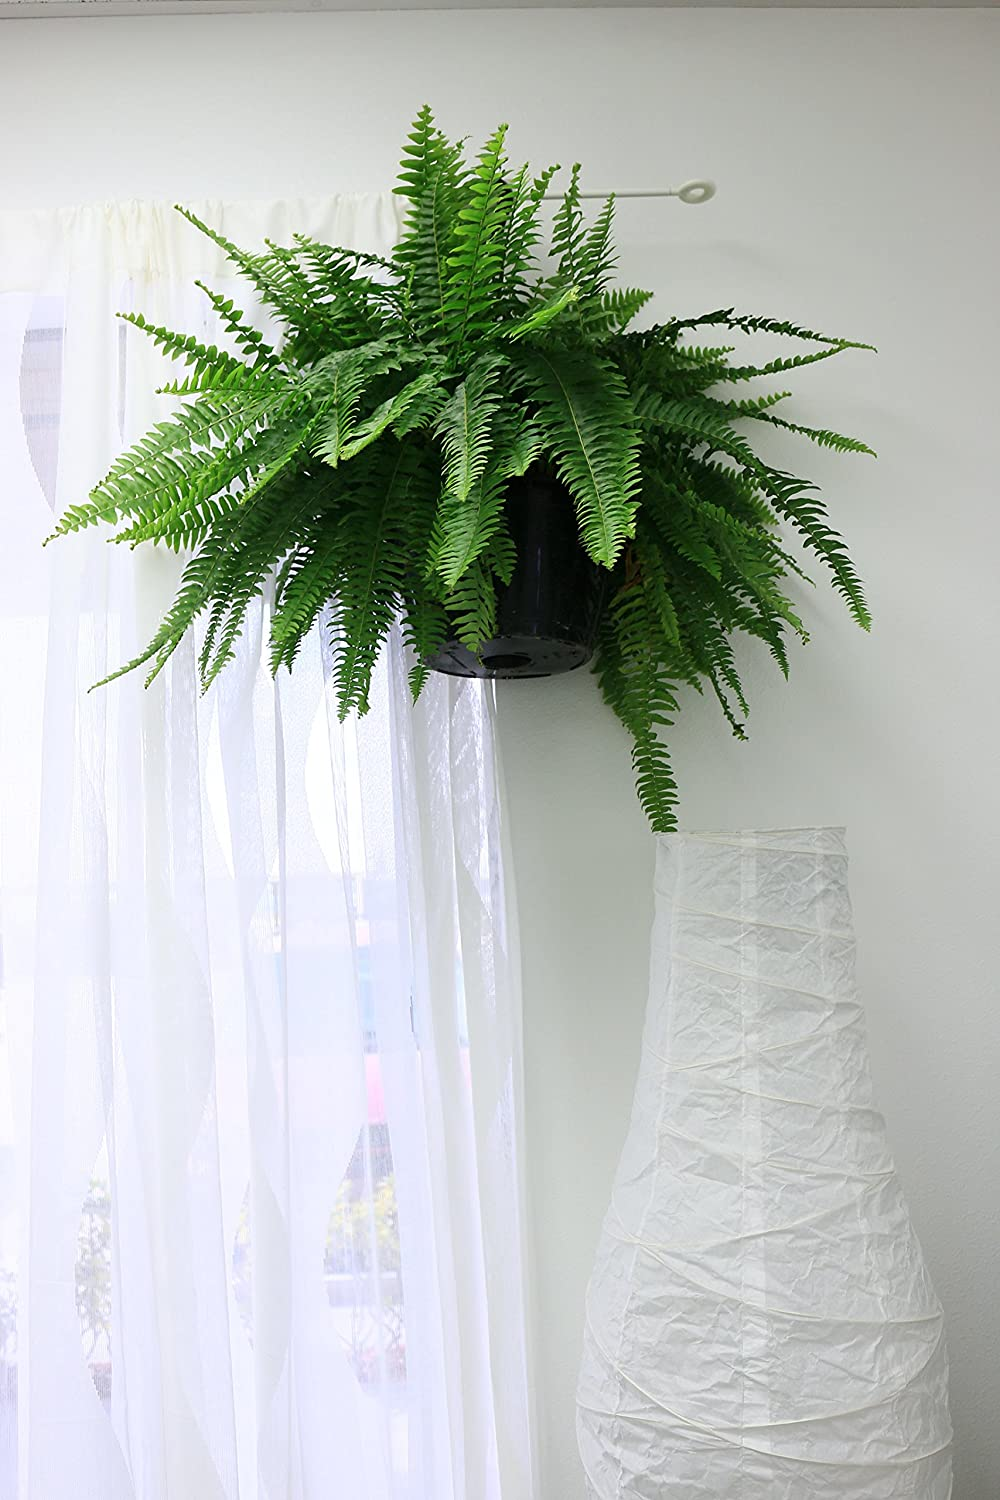 The Boston Fern  to hang indoors